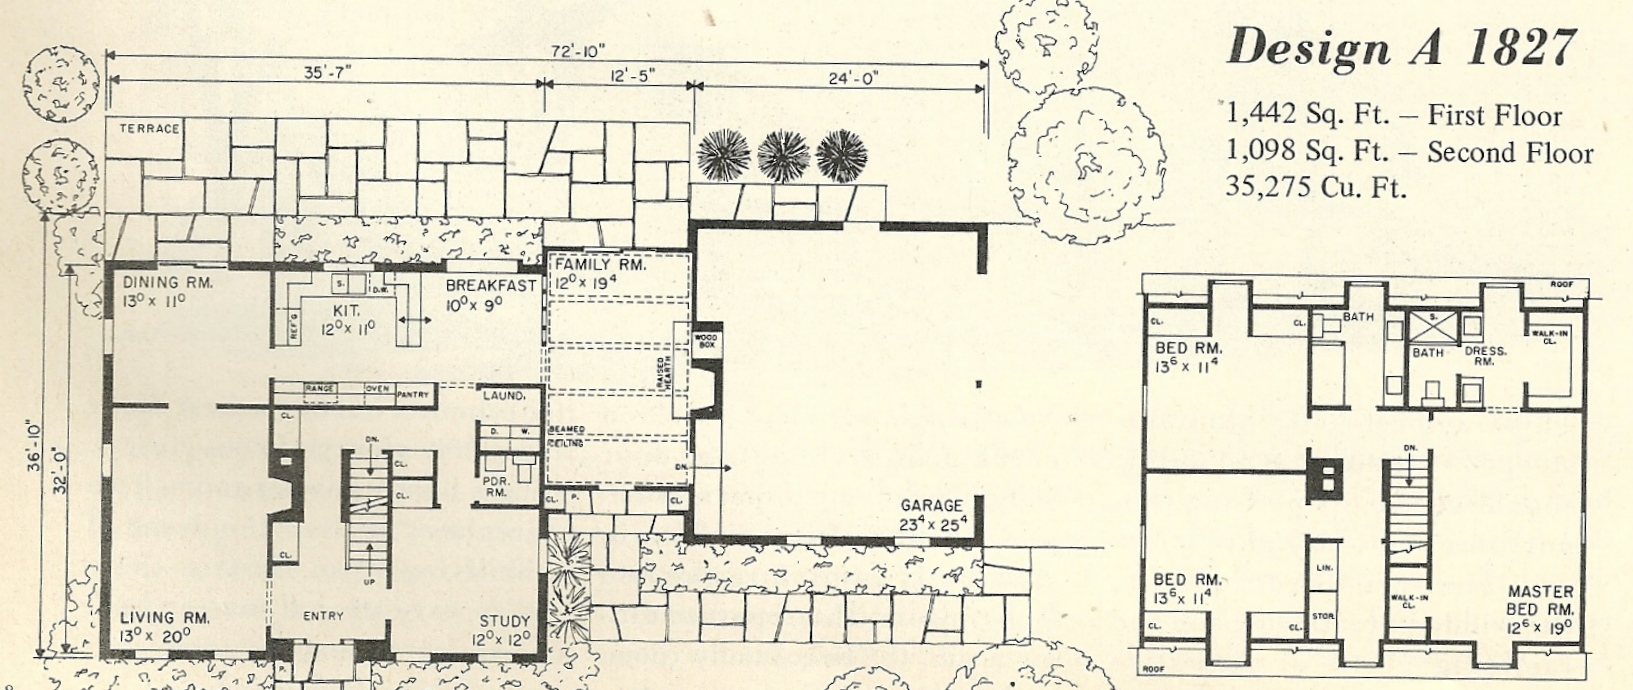 Vintage house plans 1827a antique alter ego for 1970s house floor plans